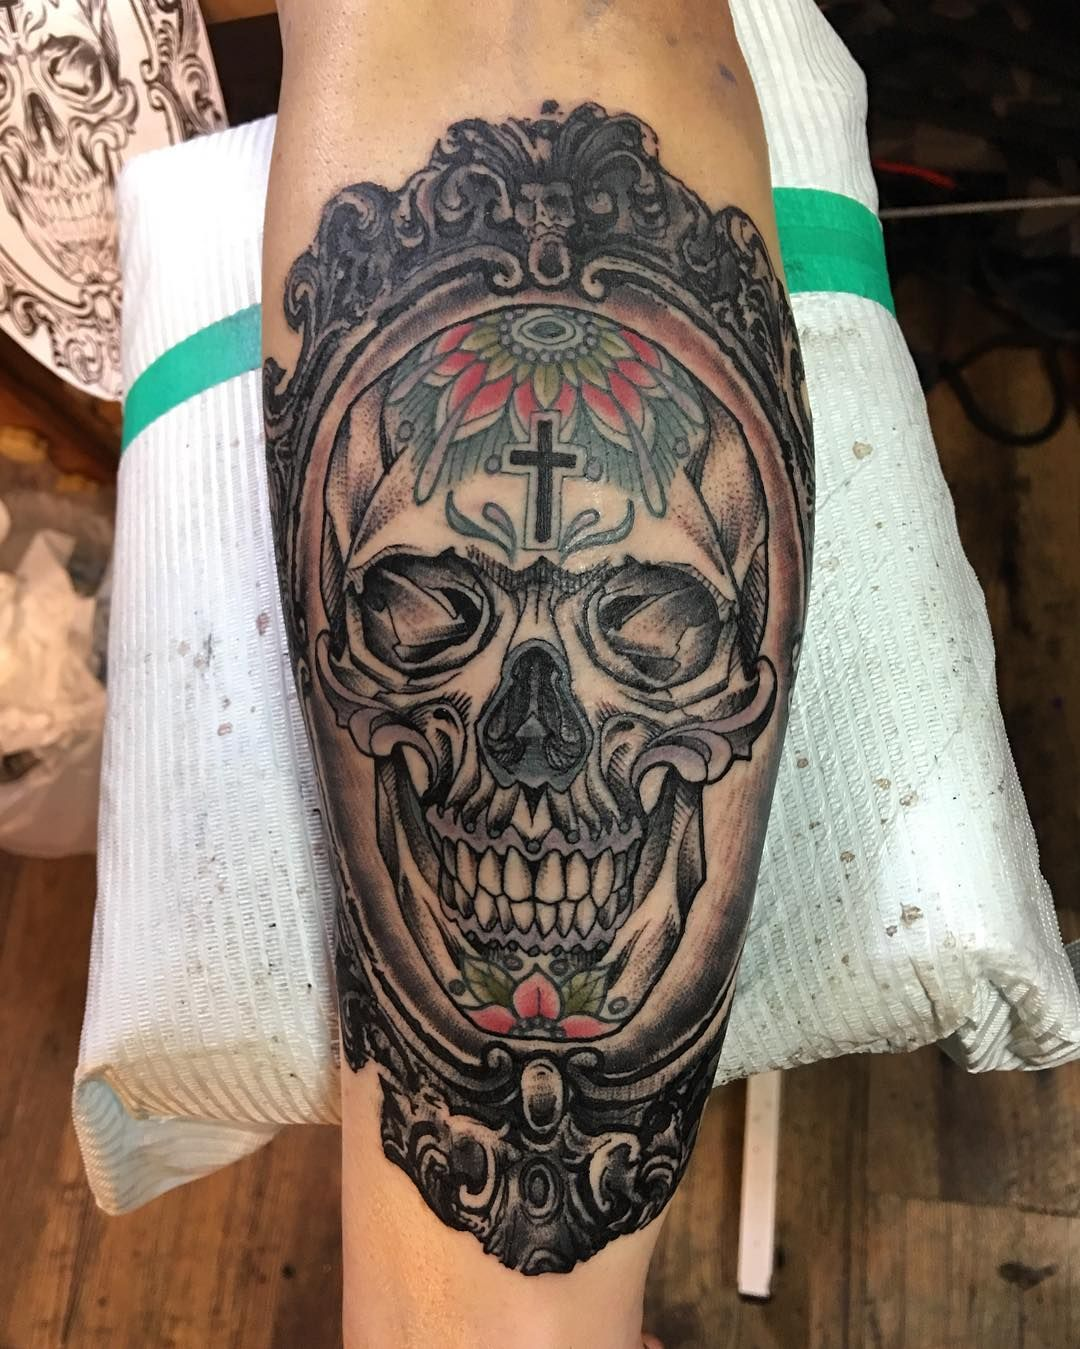 more traditional mexican tattoo with realistic looking